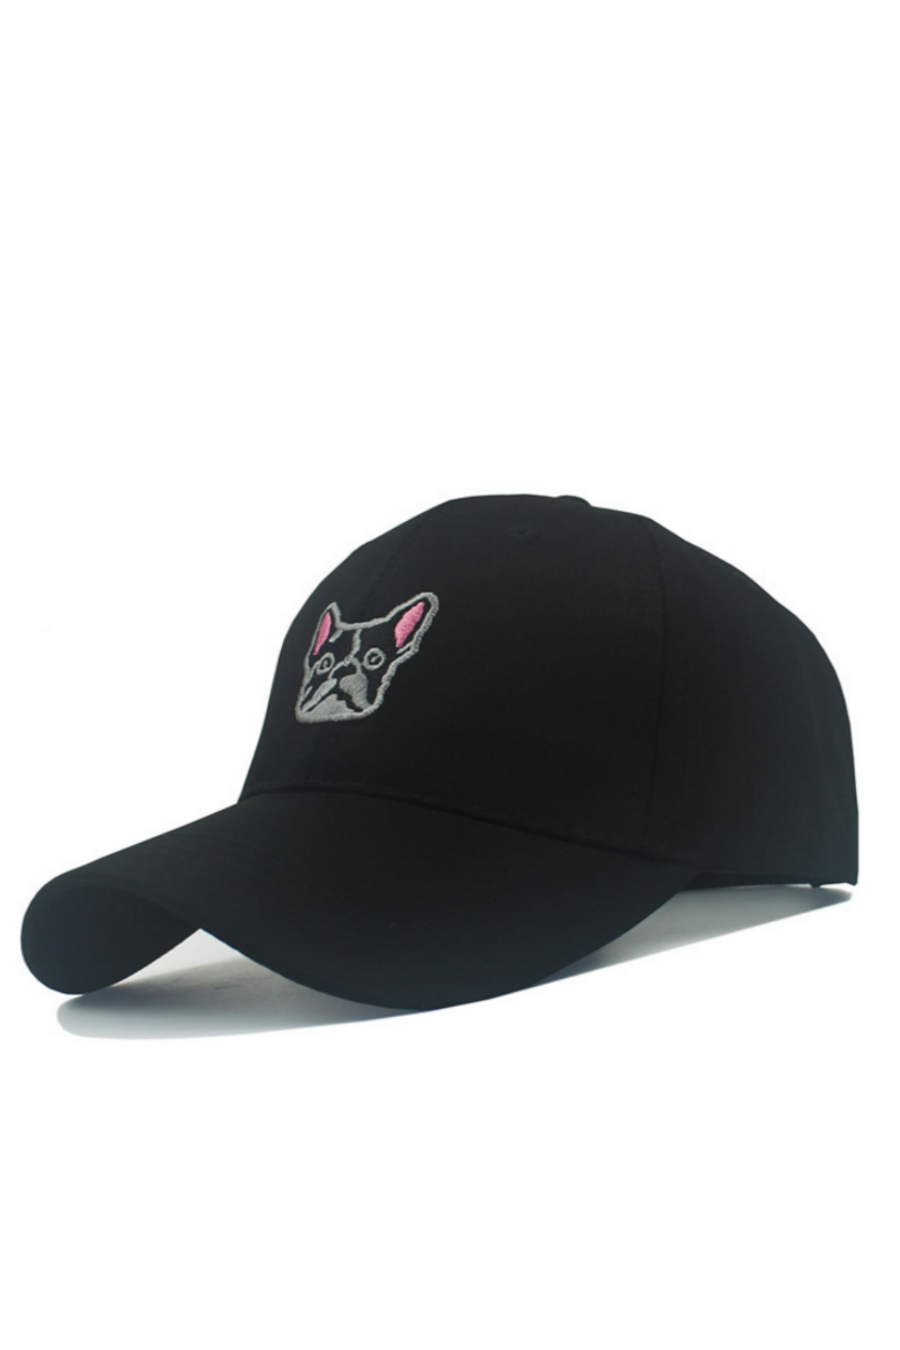 Dog Embroidered Baseball Hat